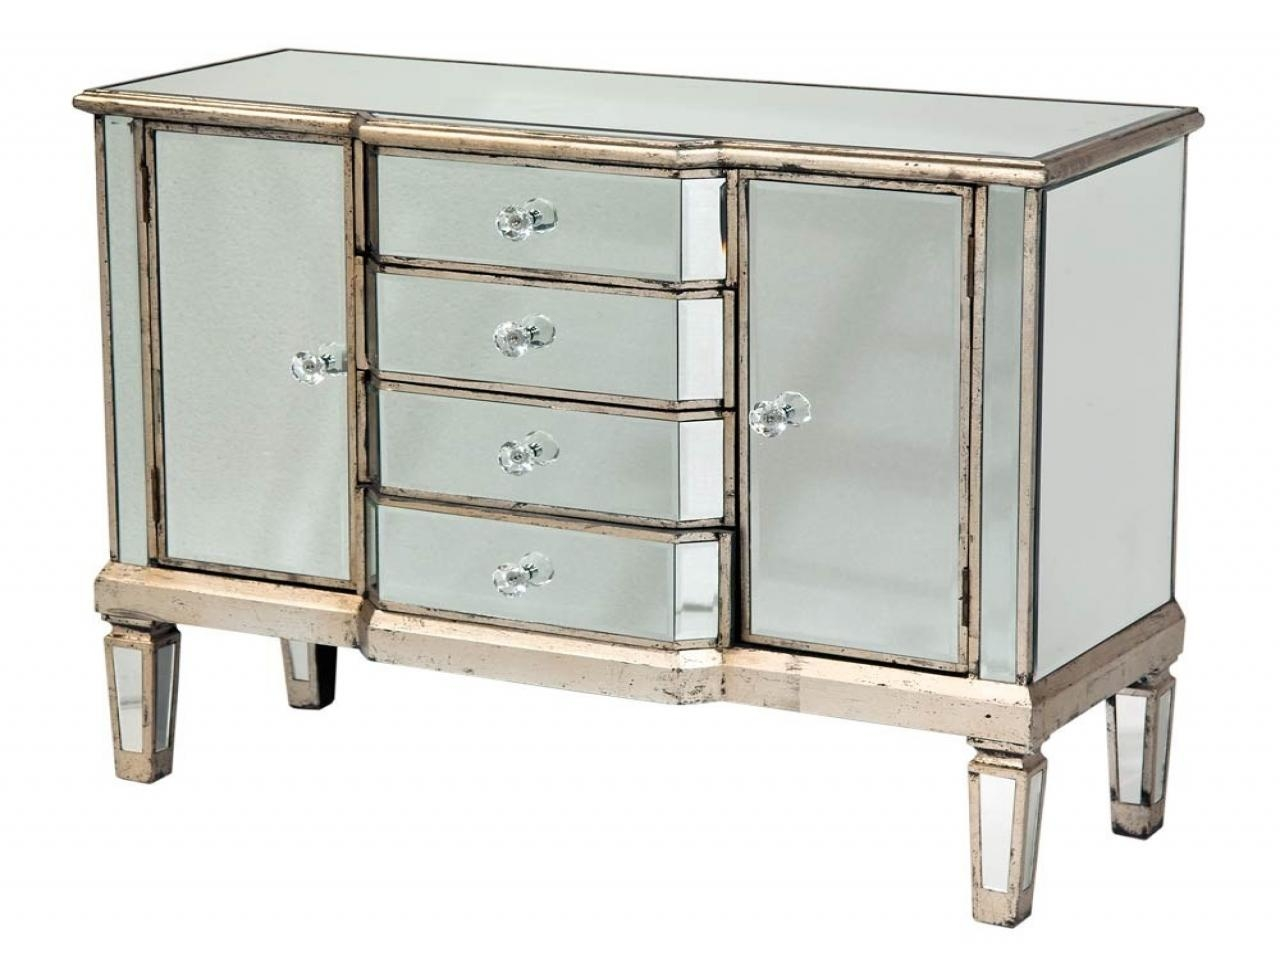 Unique Dressing Tables, Antique Mirrored Dresser Furniture Antique Throughout Antique Mirrored Furniture (Image 19 of 20)